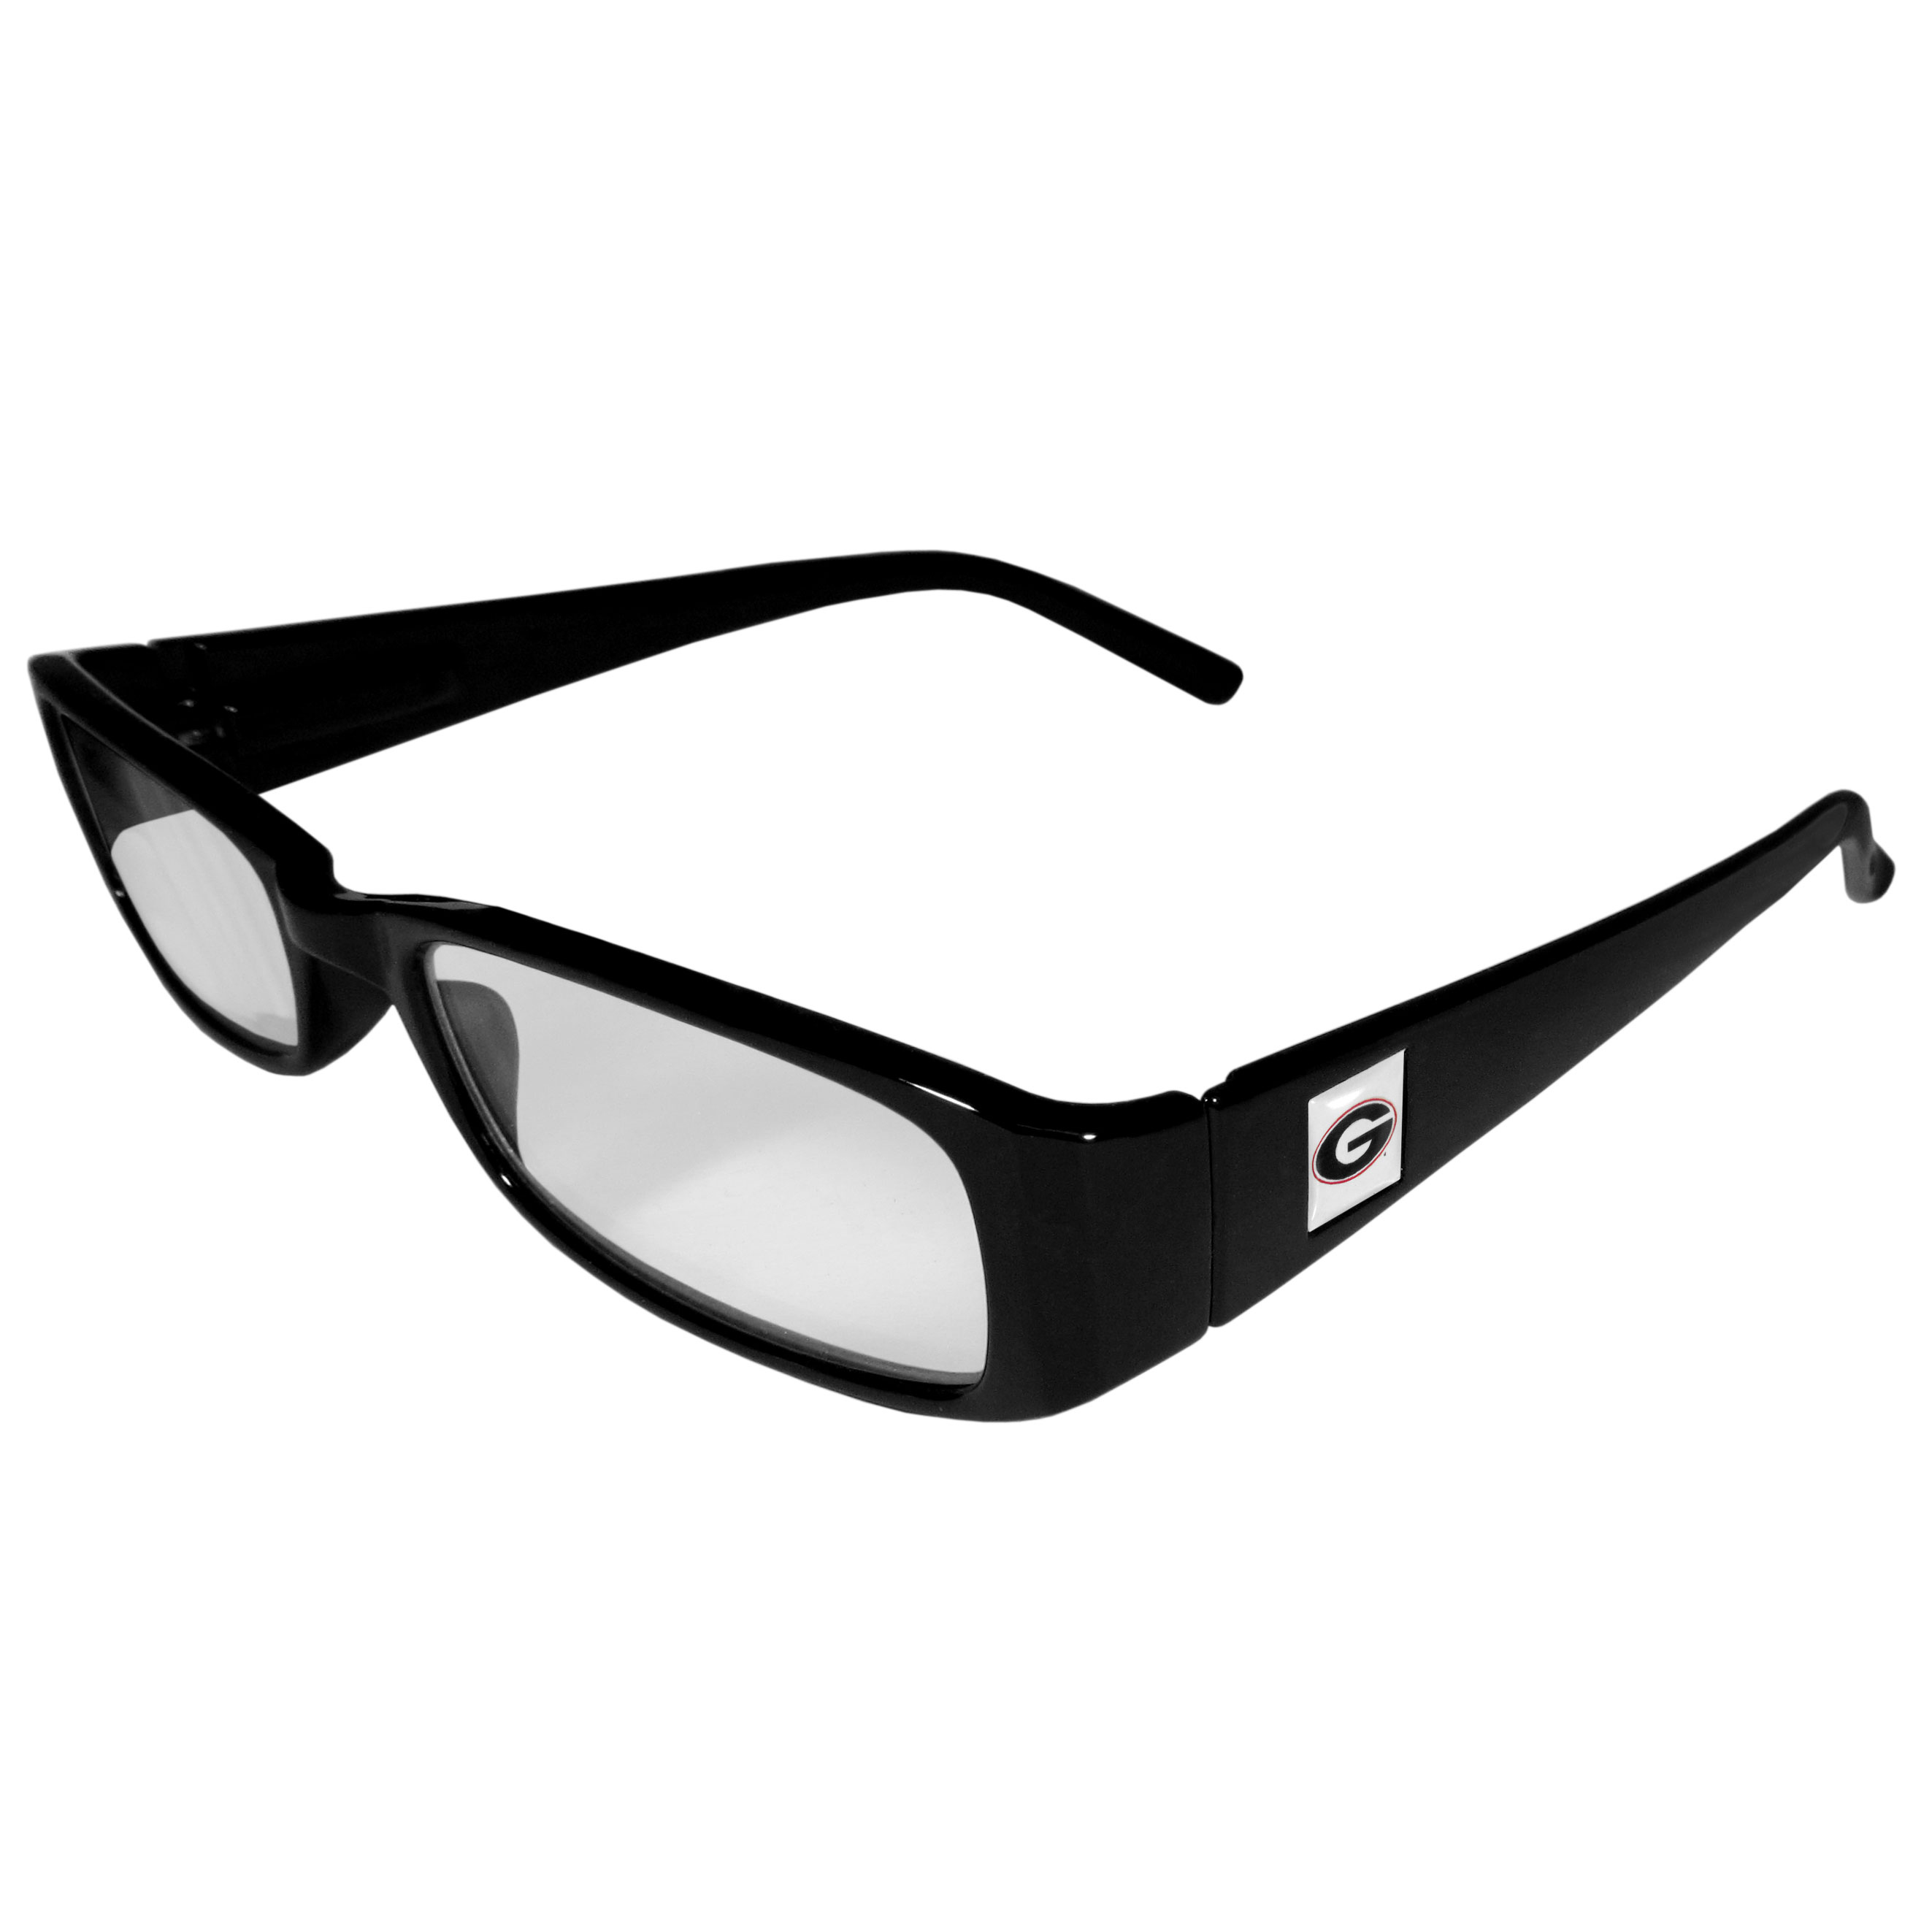 Georgia Bulldogs Black Reading Glasses +2.50 - Our Georgia Bulldogs reading glasses are 5.25 inches wide and feature the team logo on each arm. Magnification Power 2.50